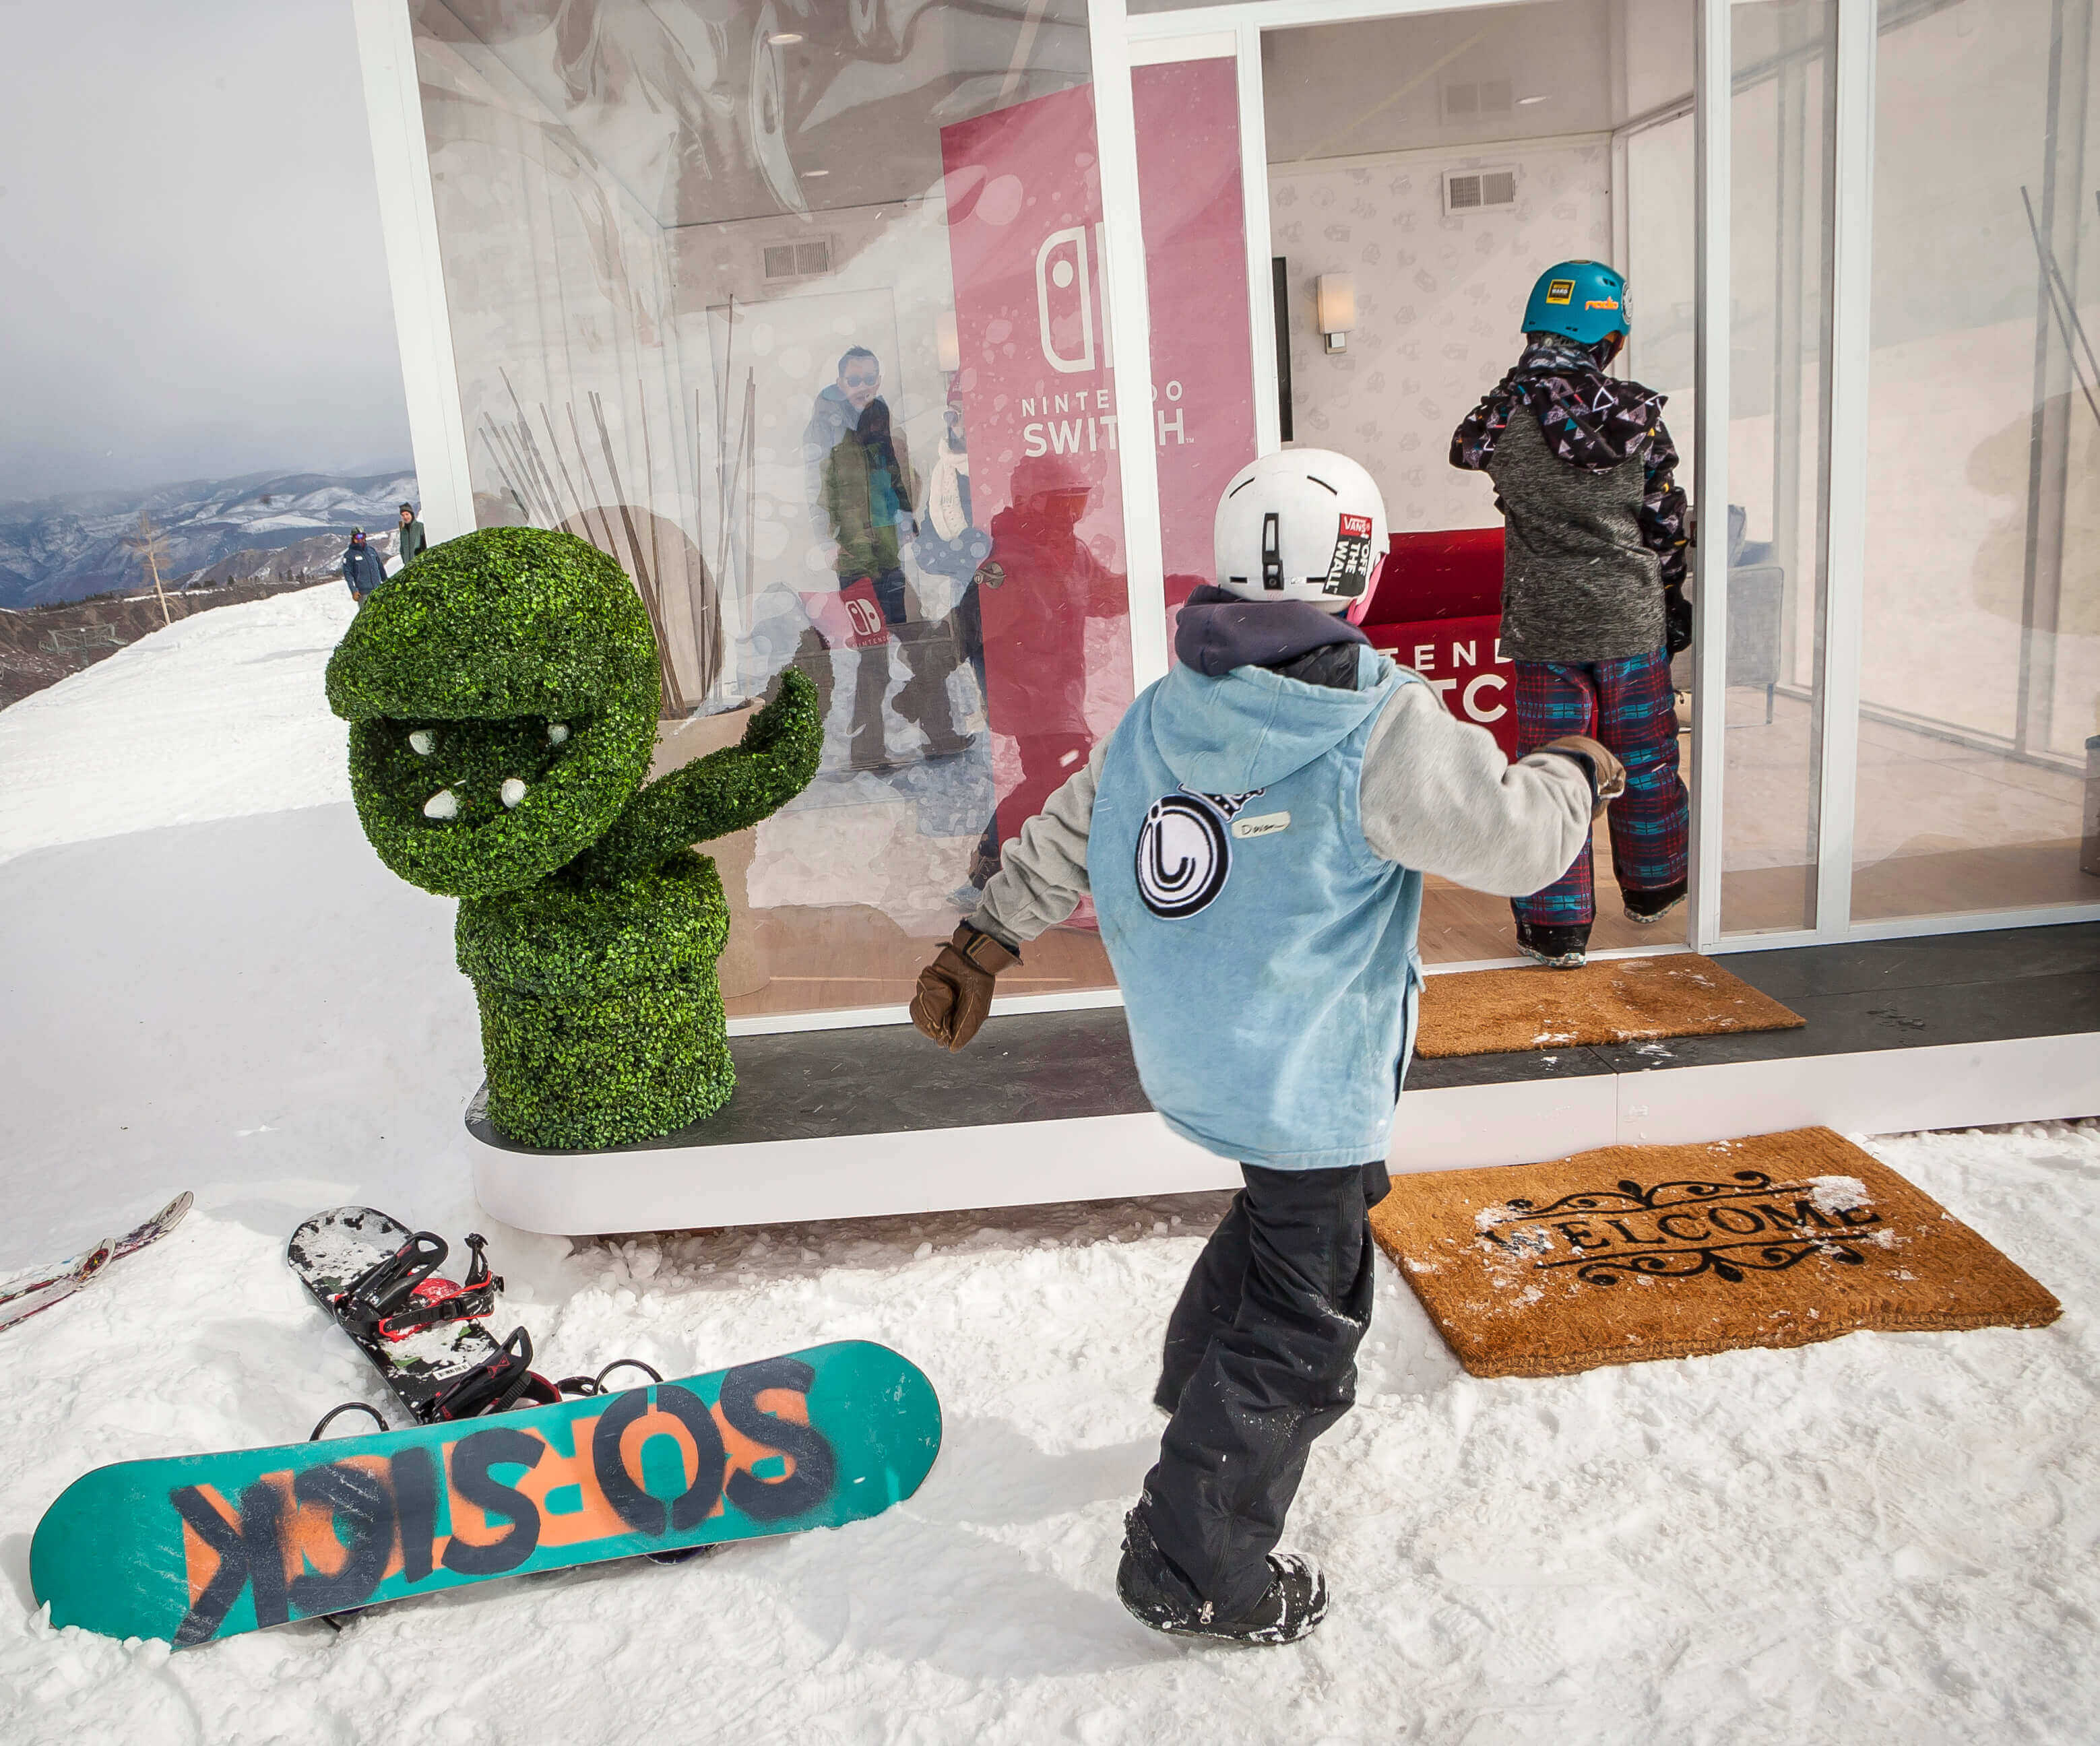 Fresh off the slopes and straight from their snowboards, guests of all ages were able to take part in the Nintendo Switch adventure at our experiential marketing activation.